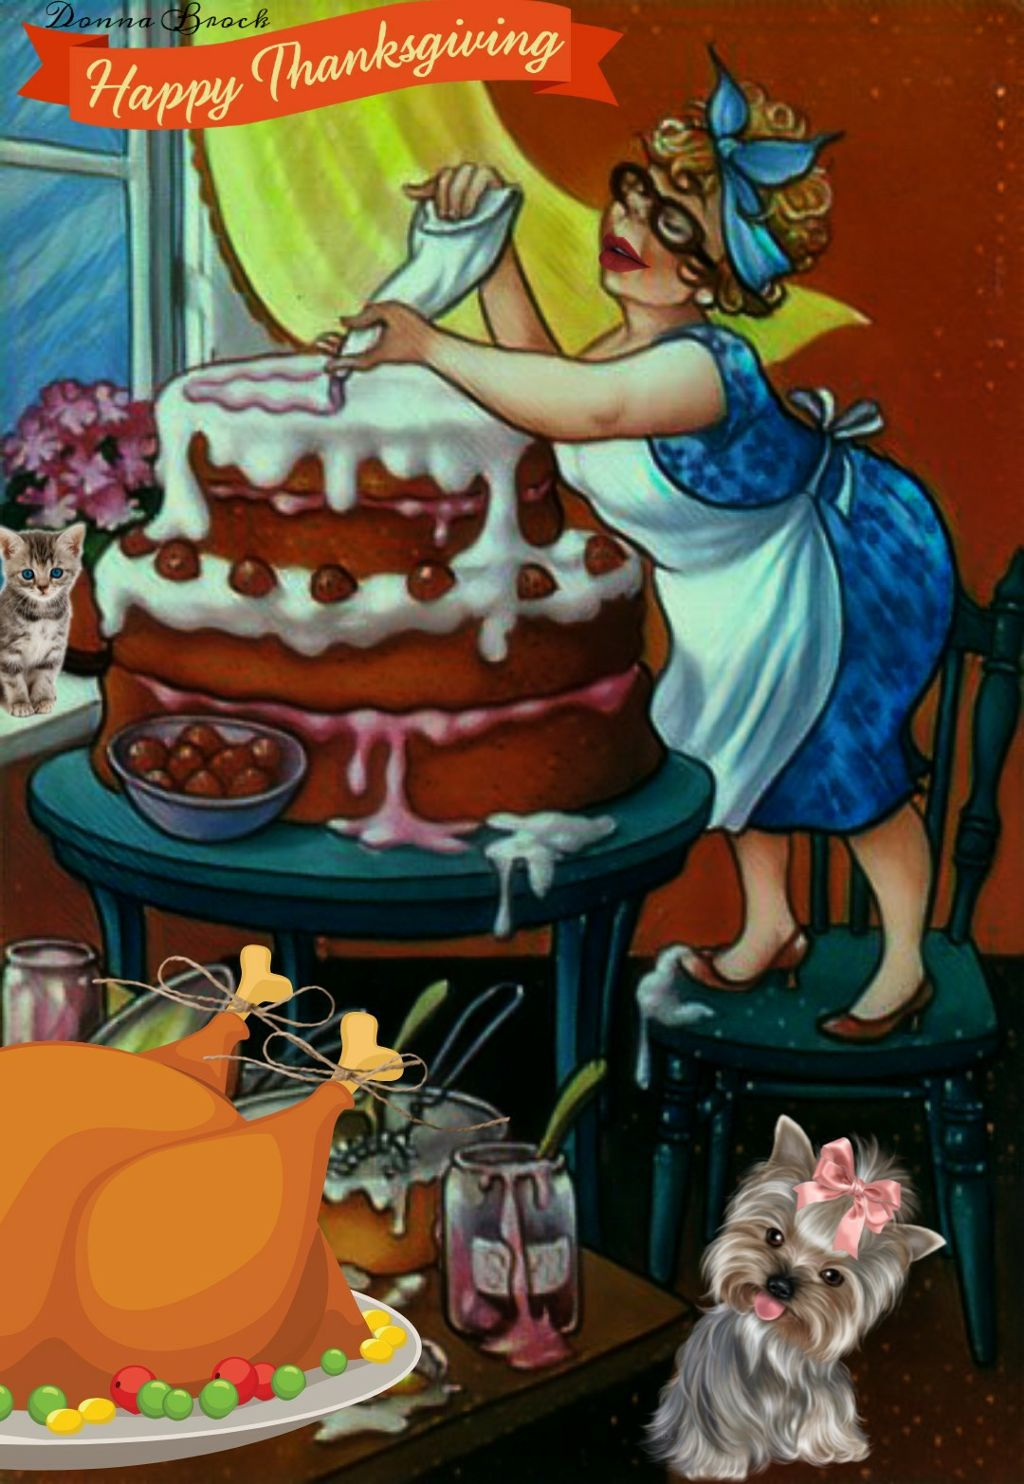 THE COOK ... THANKSGIVING ...    #thanksgiving  #freetoedit. #woman #cook #baker #cake #dog #cat  #fcthanksgiving